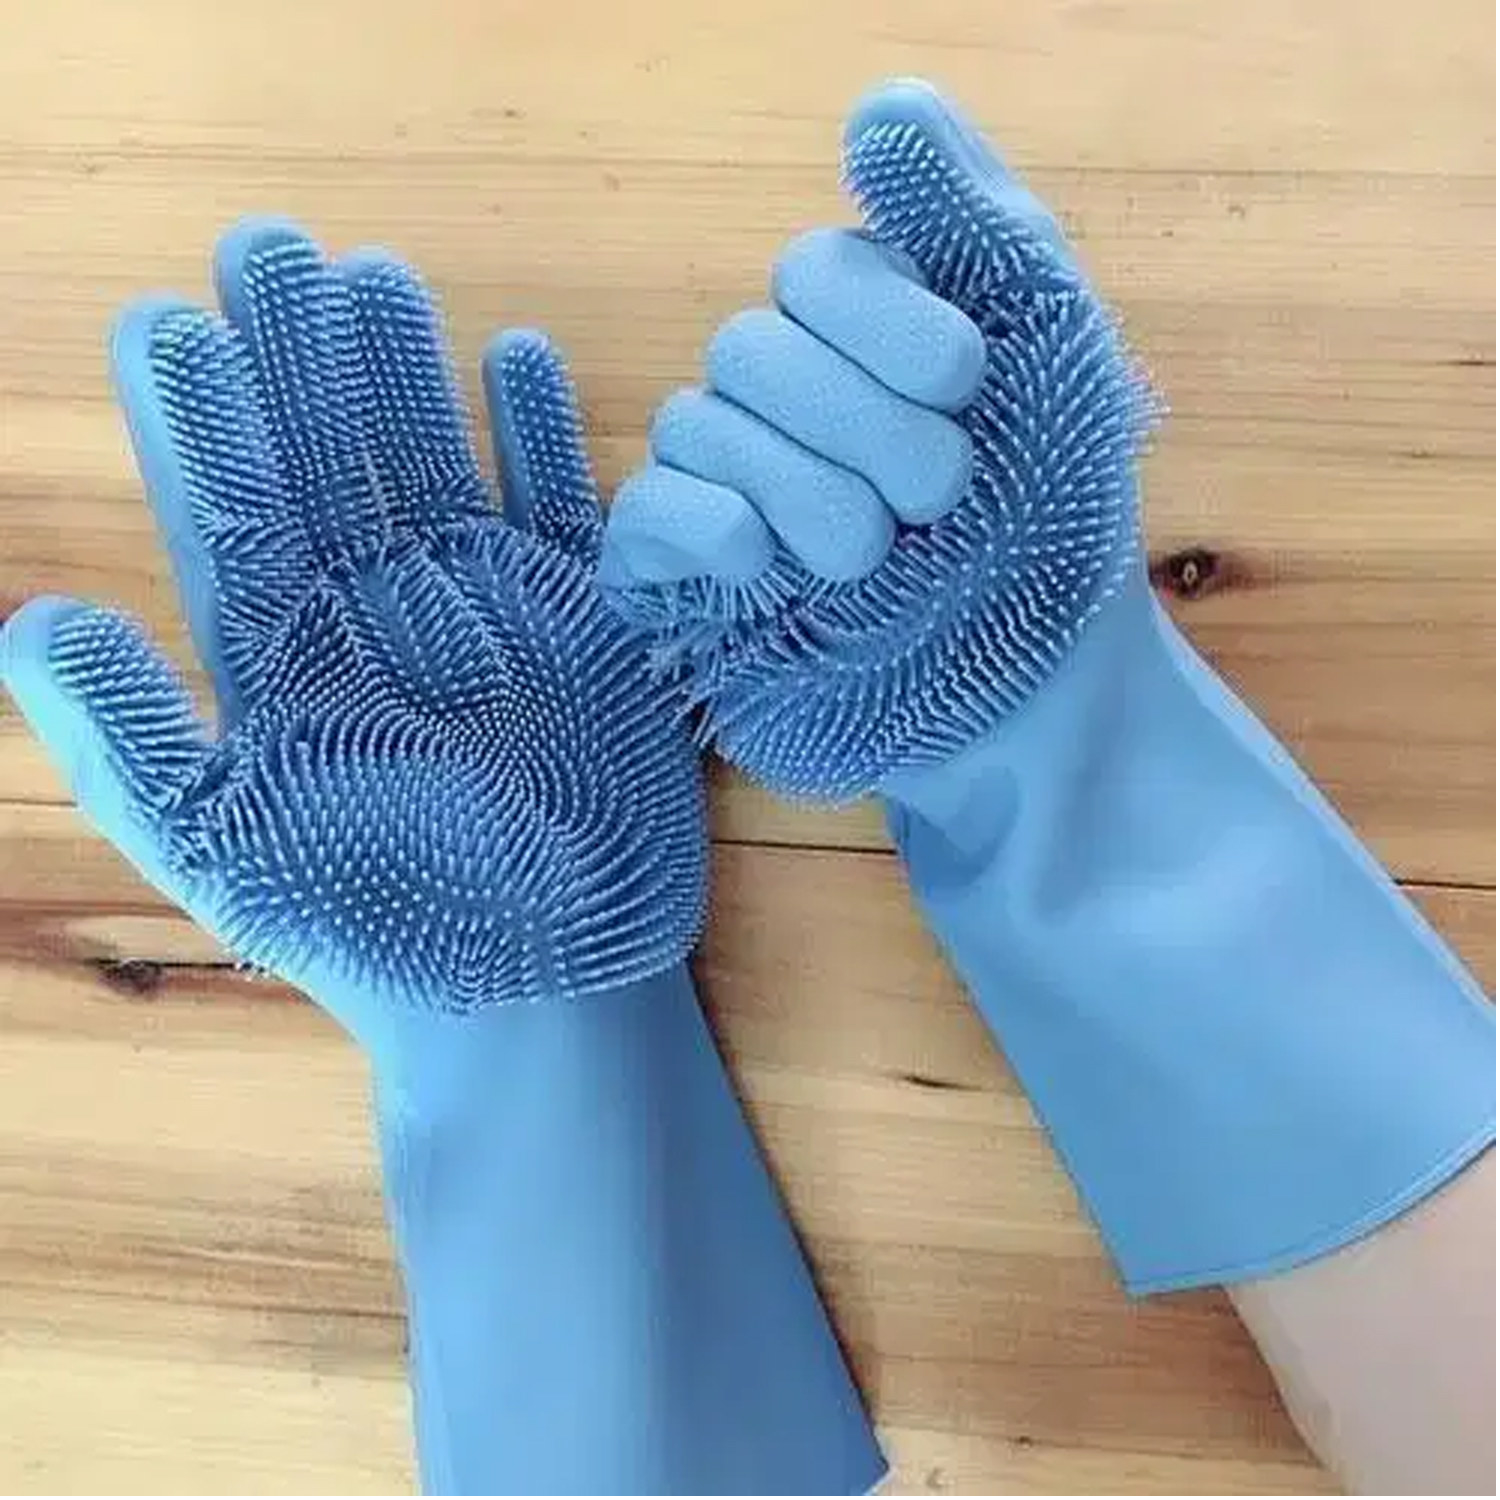 the blue reusable silicone dishwashing gloves on a model's hands